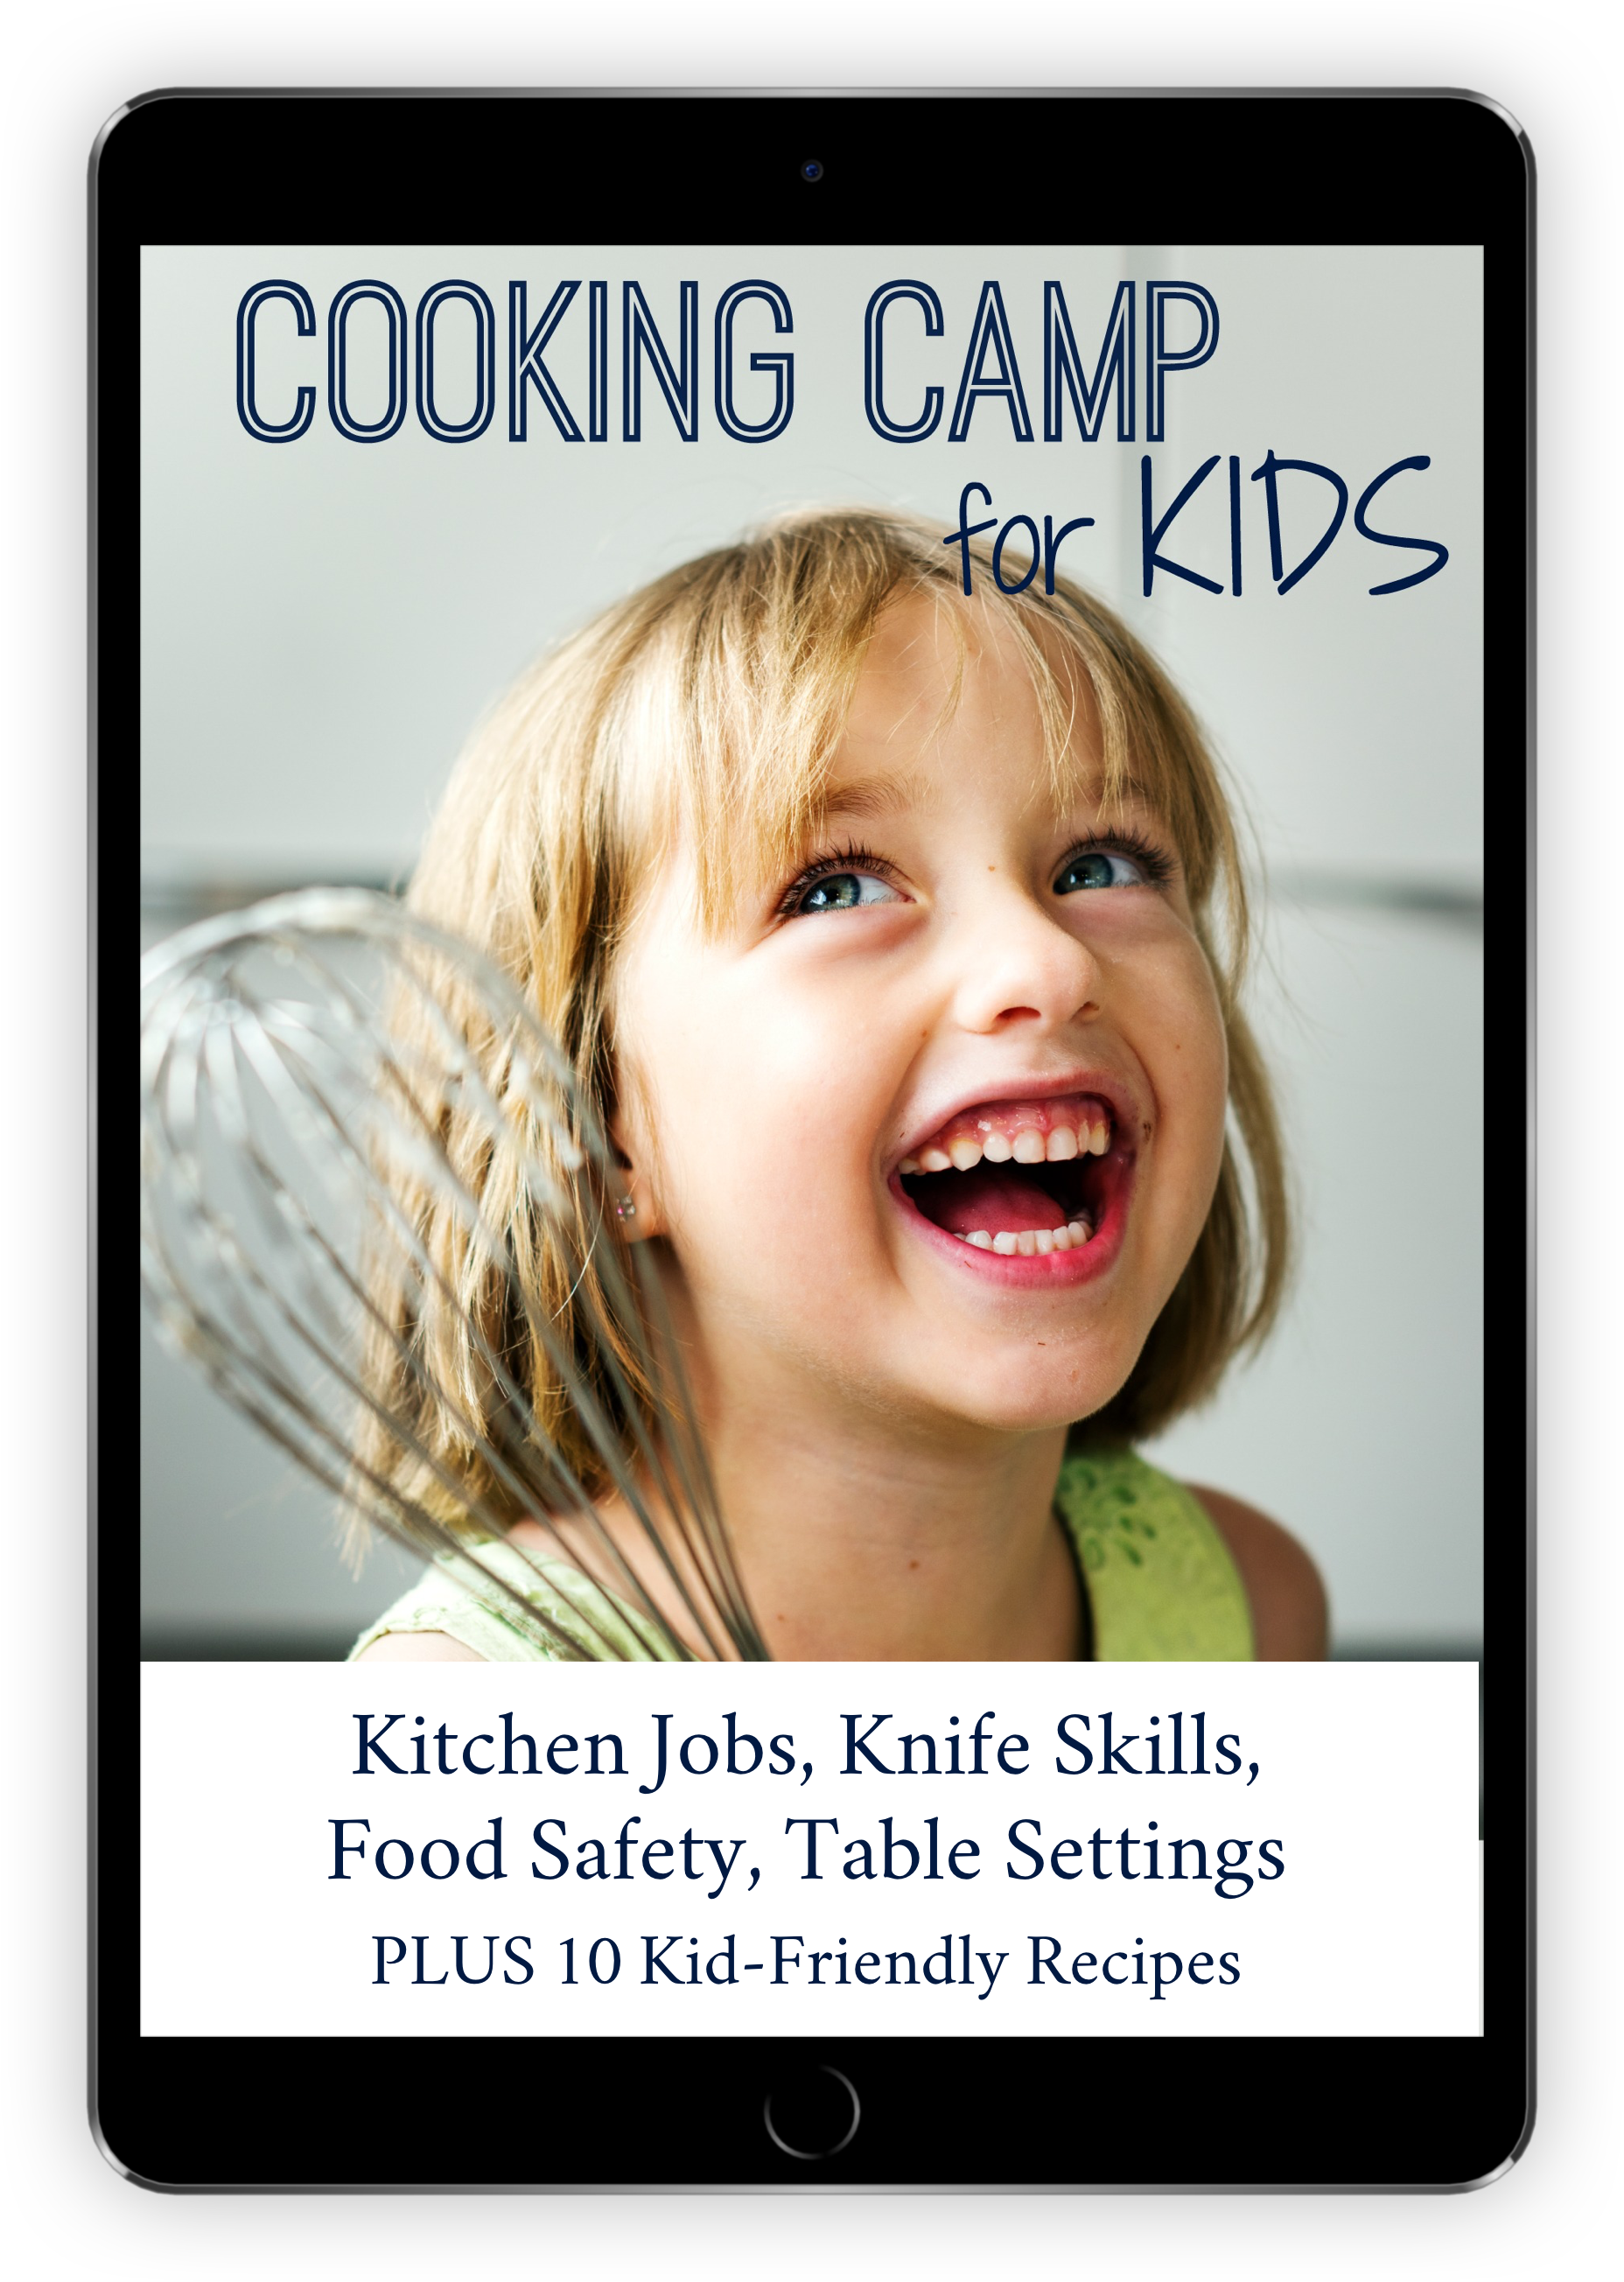 Cooking camp for kids Mockup V2 - Copy.png